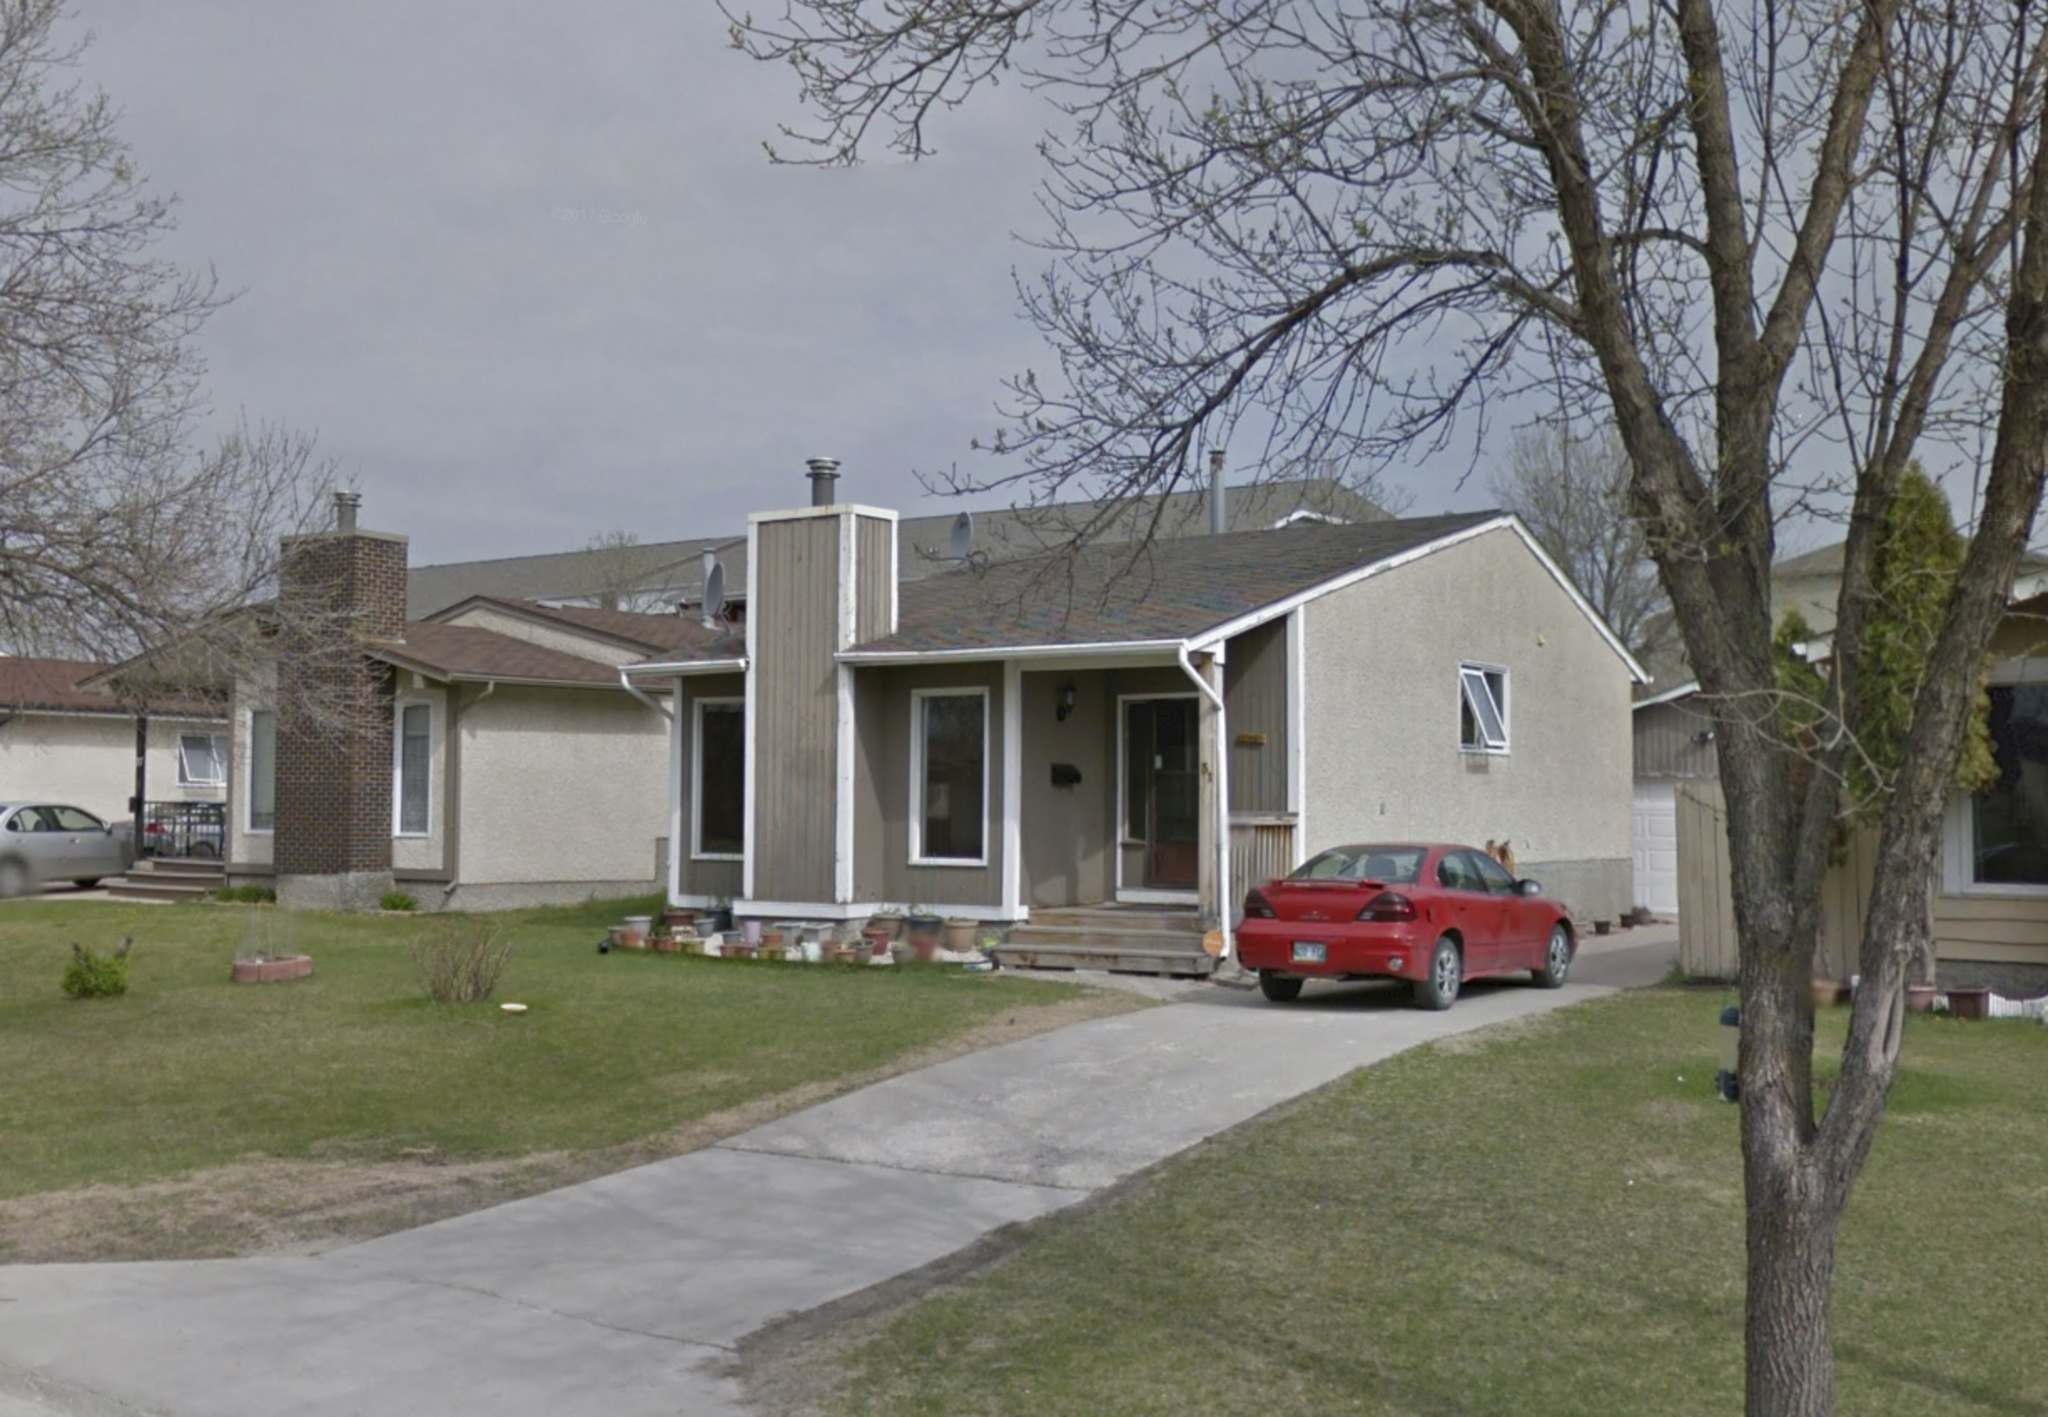 GOOGLE MAPS</p><p>The house at 31 Petriw Bay is listed on the province&rsquo;s latest public health protection reports of establishments convicted or closed for violations.</p>